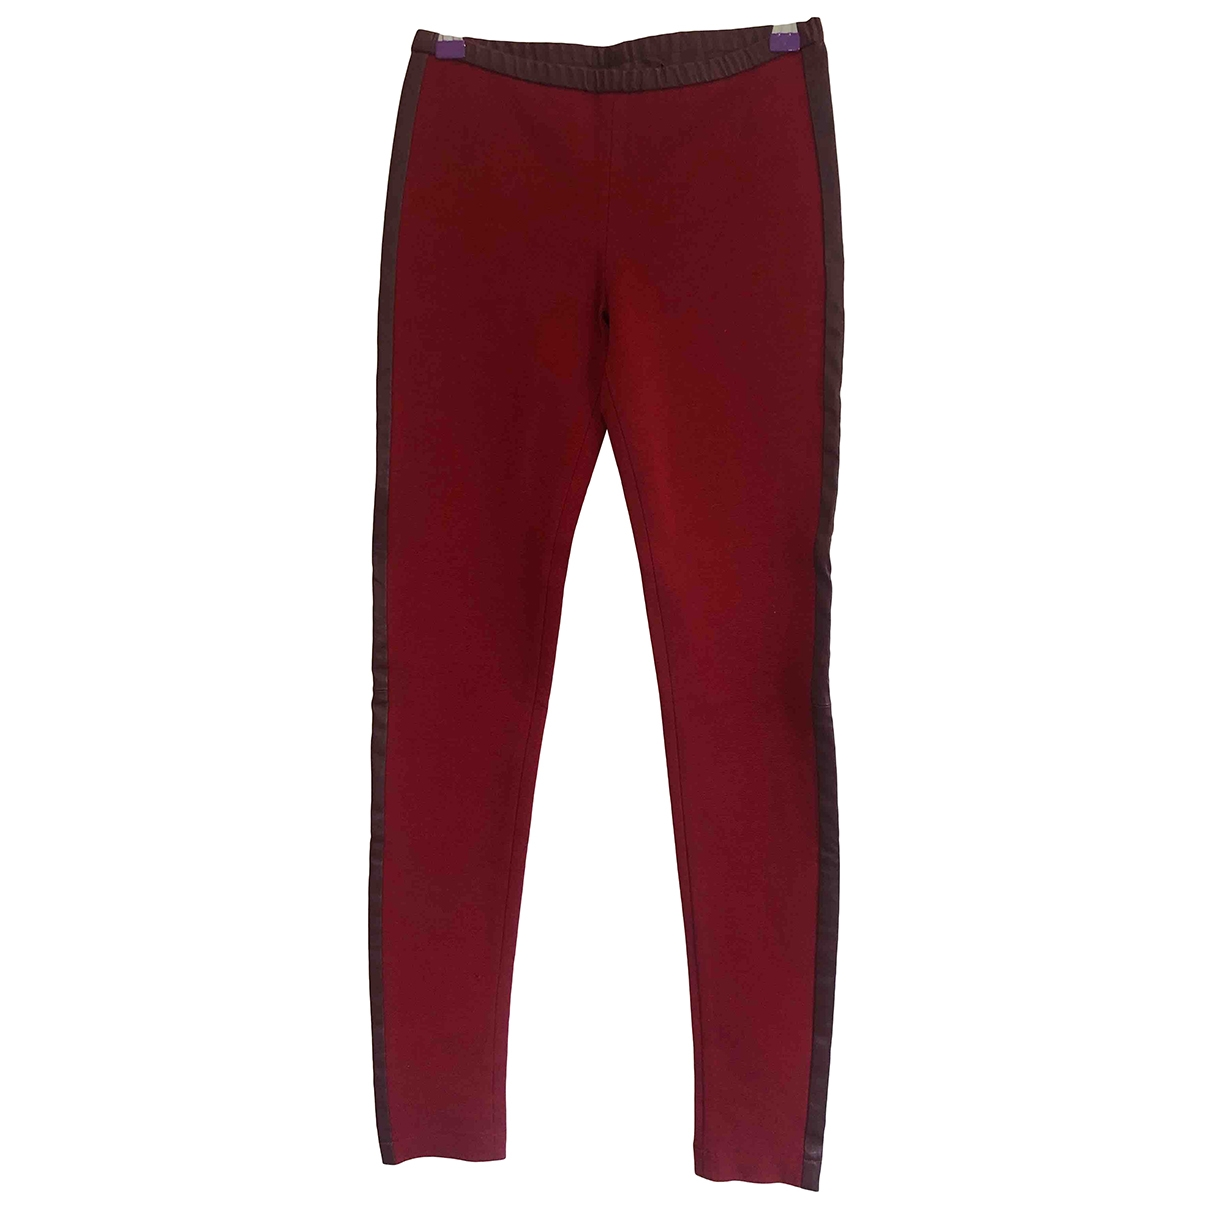 Emilio Pucci \N Burgundy Leather Trousers for Women 40 IT